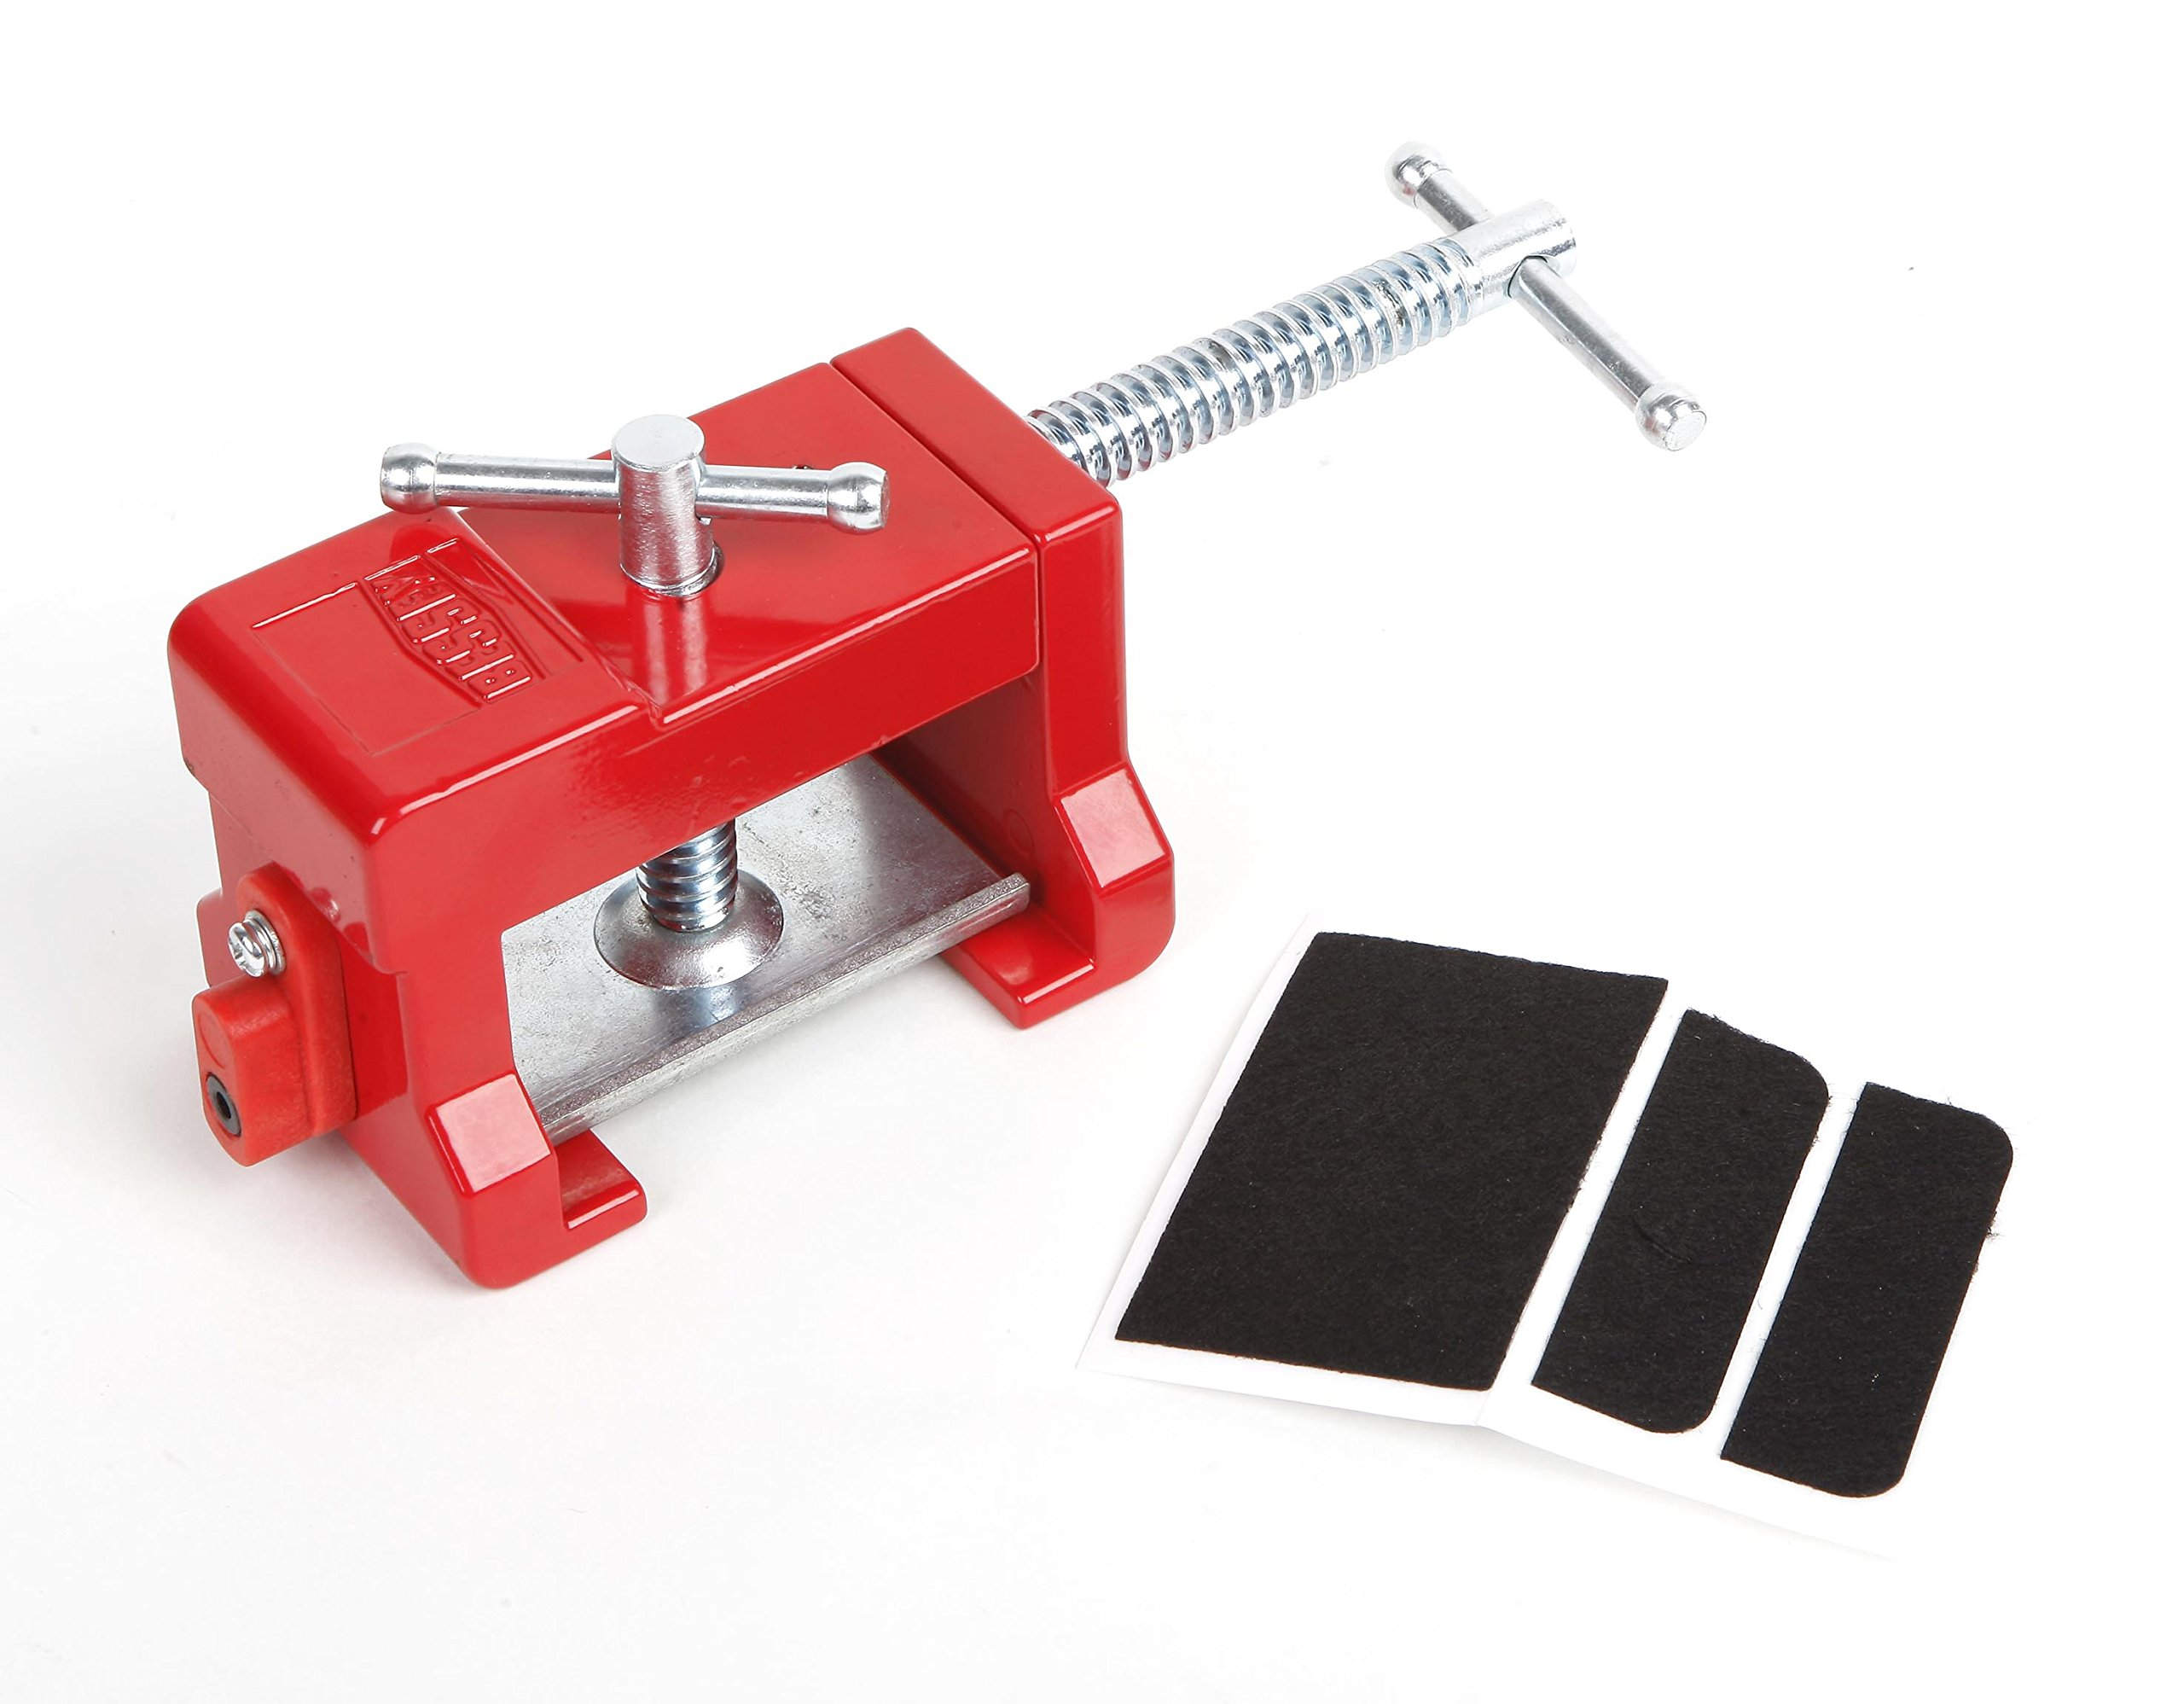 Bessey BES8511 Cabinetry Clamp, Red